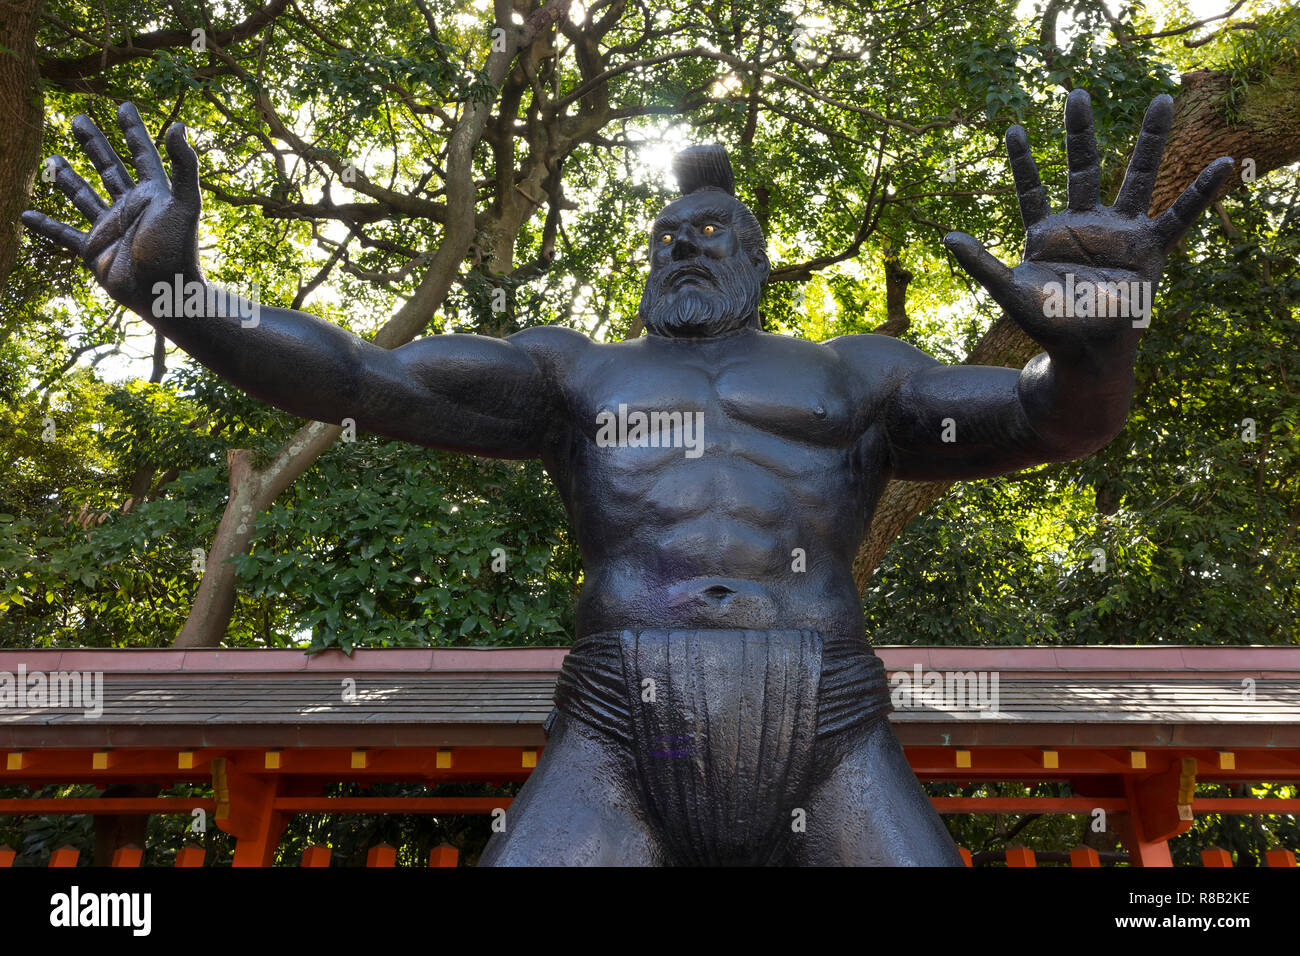 Fukuoka, Japan - October 20, 2018: Statue of a sumo wrestler of ancient times at the Sumiyoshi shrine grounds - Stock Image